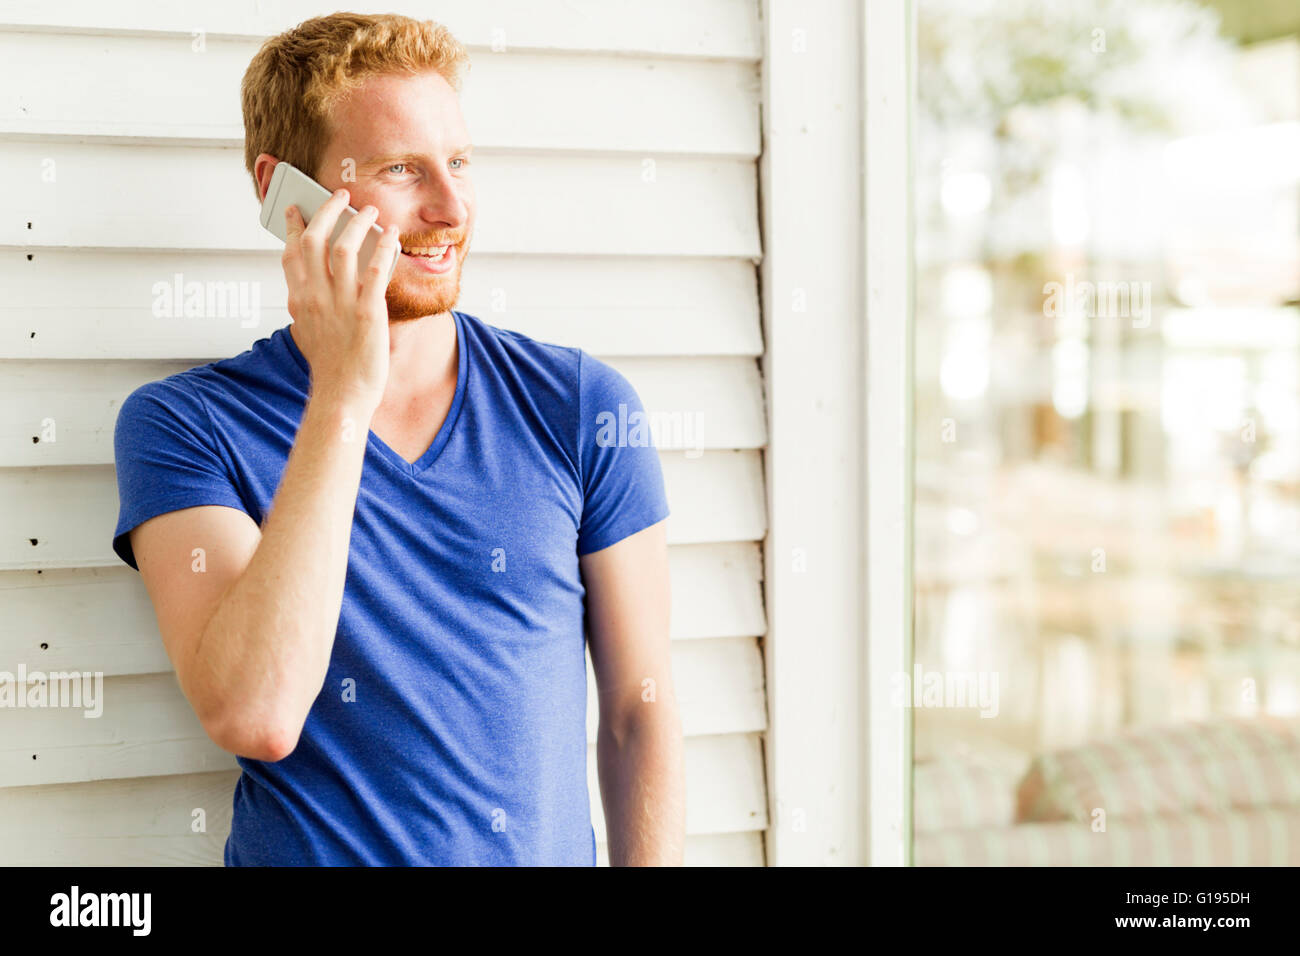 Happy red haired handsome man using phone and smiling during a summer day - Stock Image